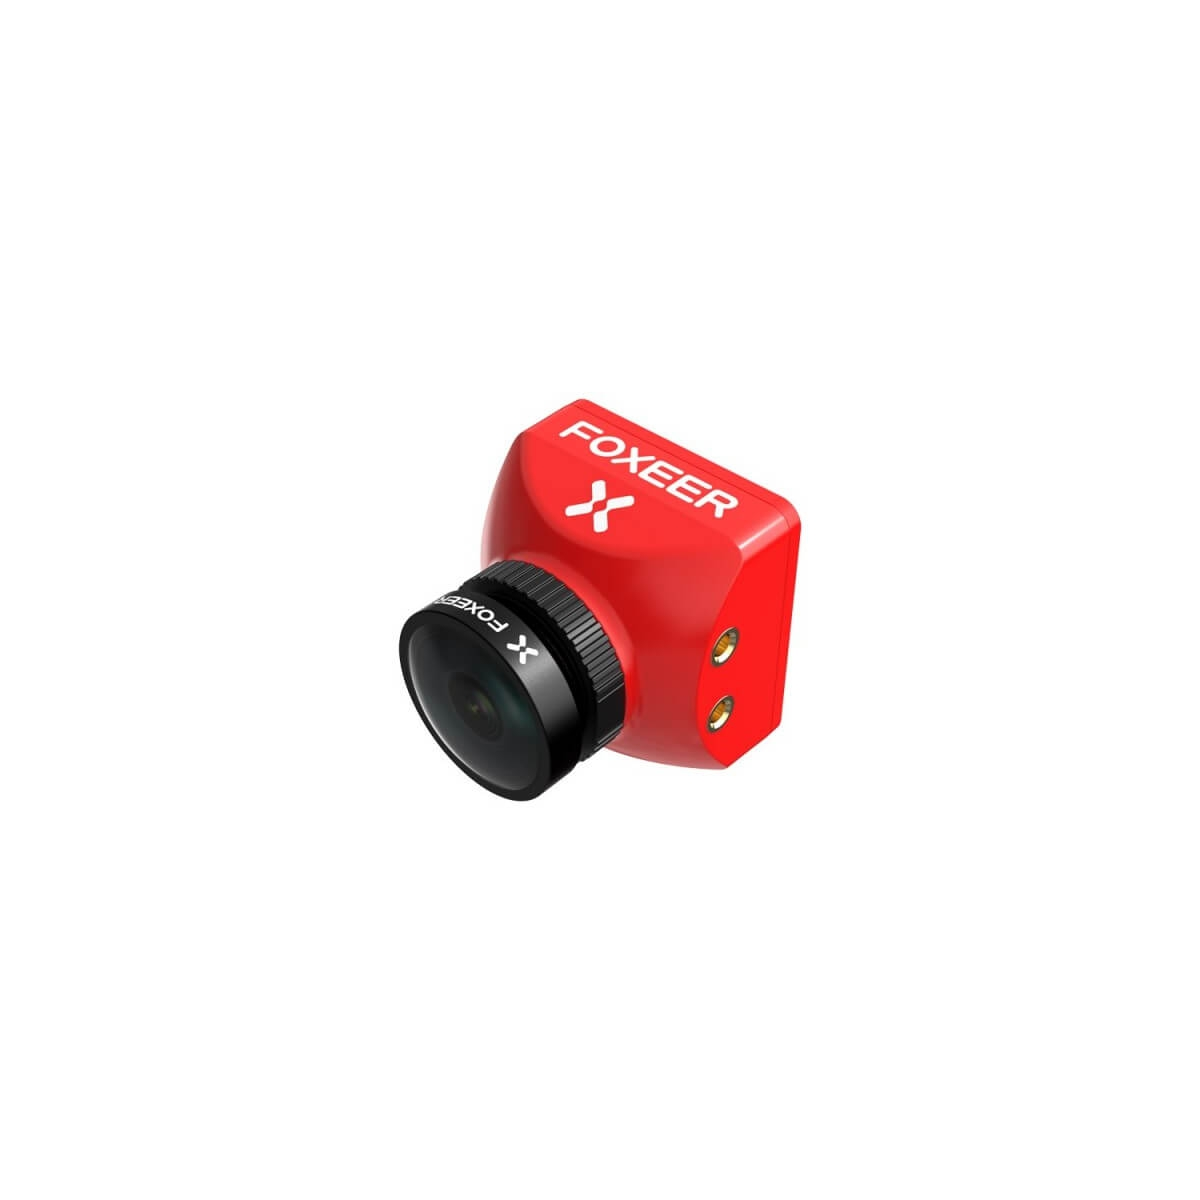 Camera for FPV racing drone